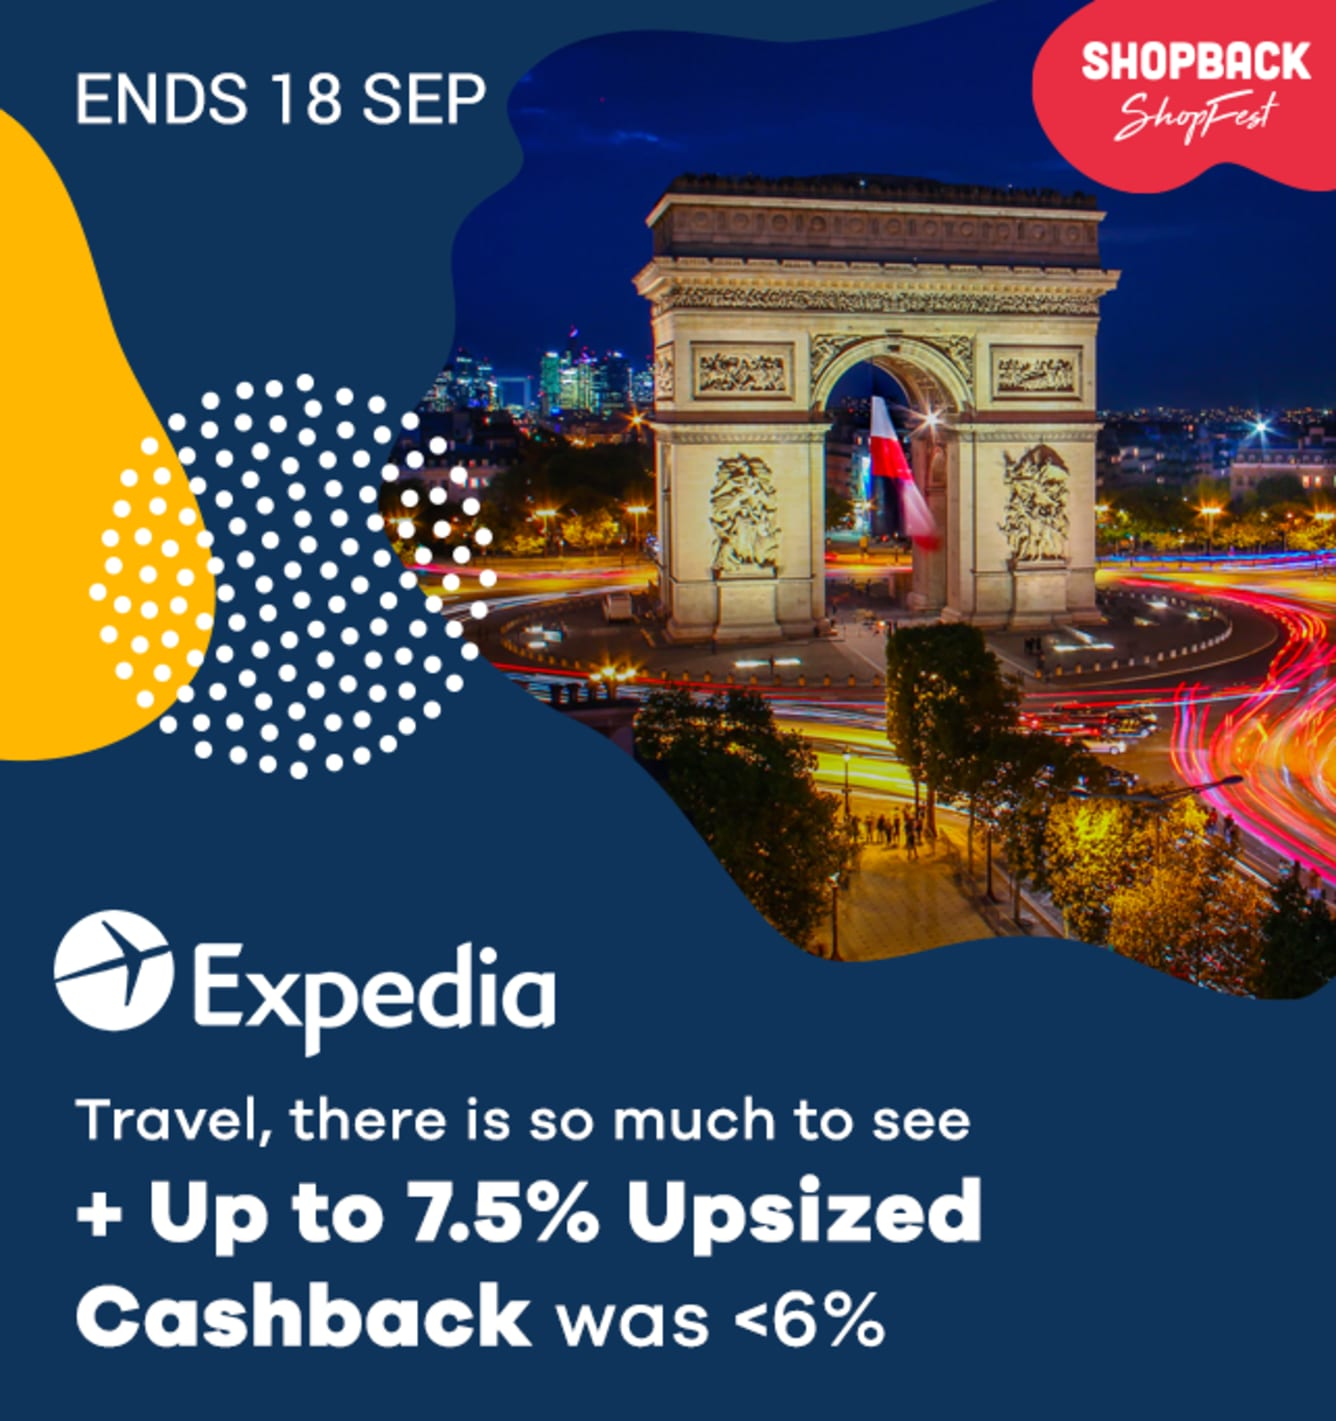 Expedia: 7.5% Upsized Cashback September 2019